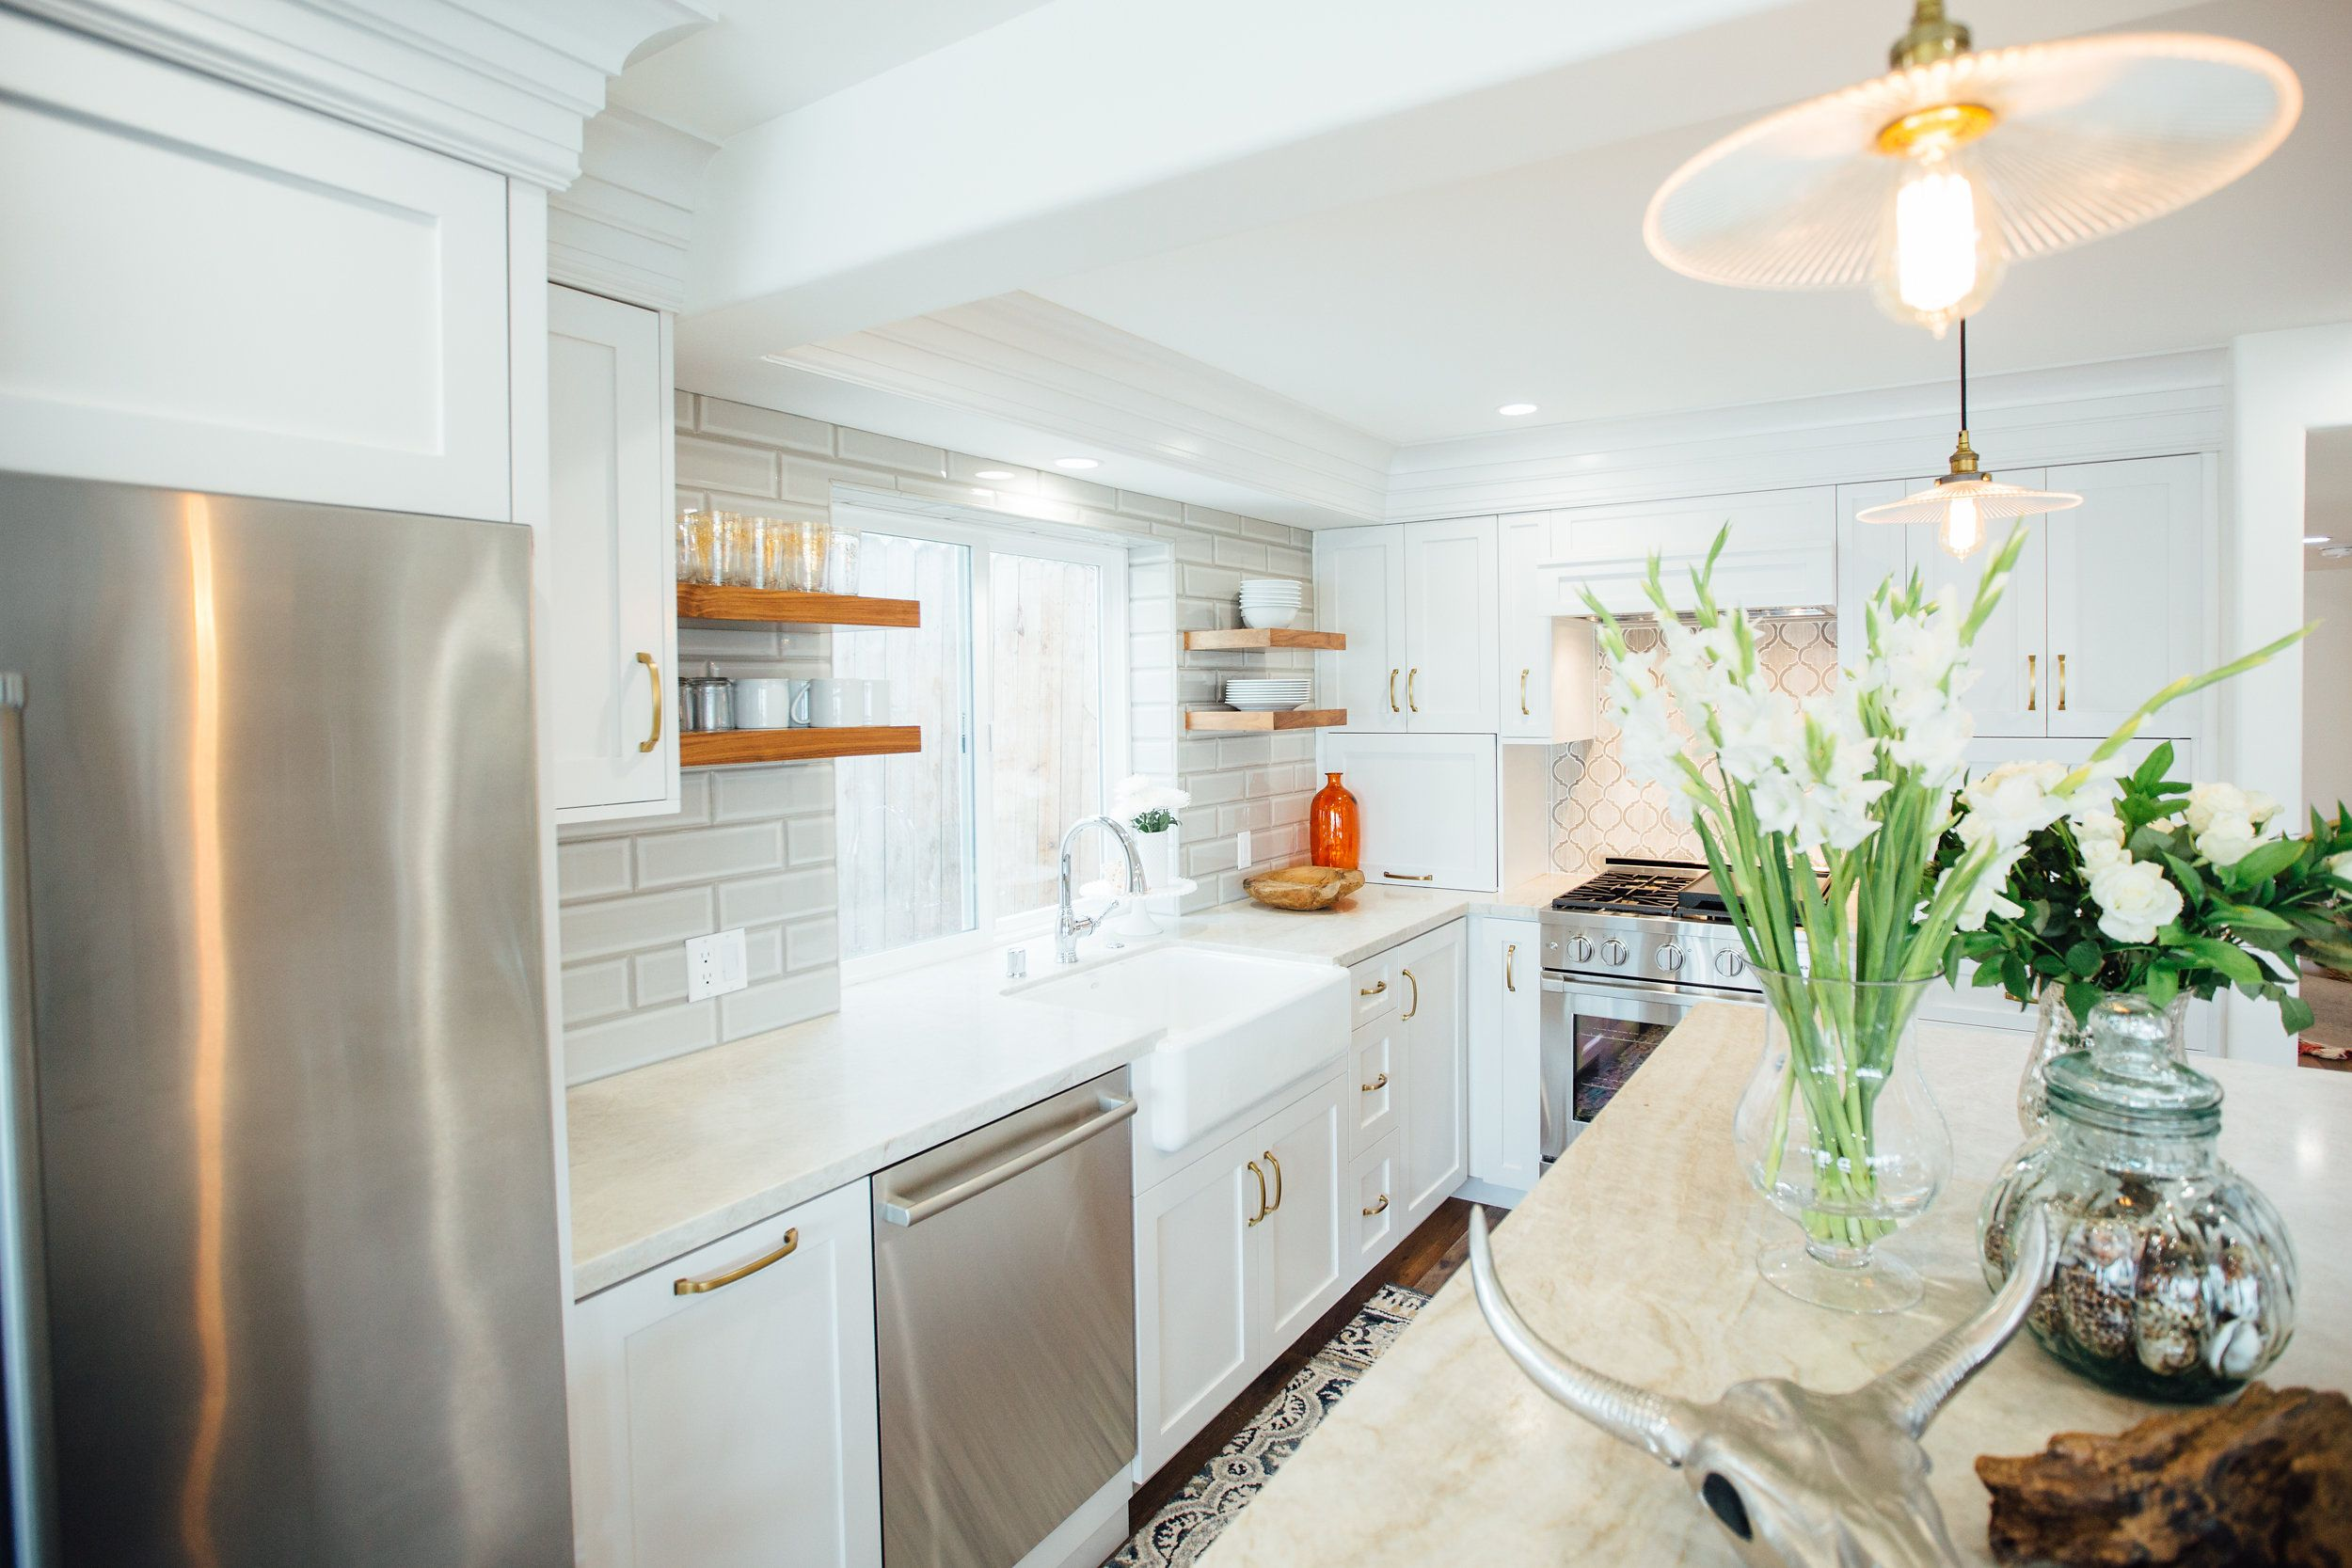 Before & After -- A California Familys Mega Kitchen Overhaul